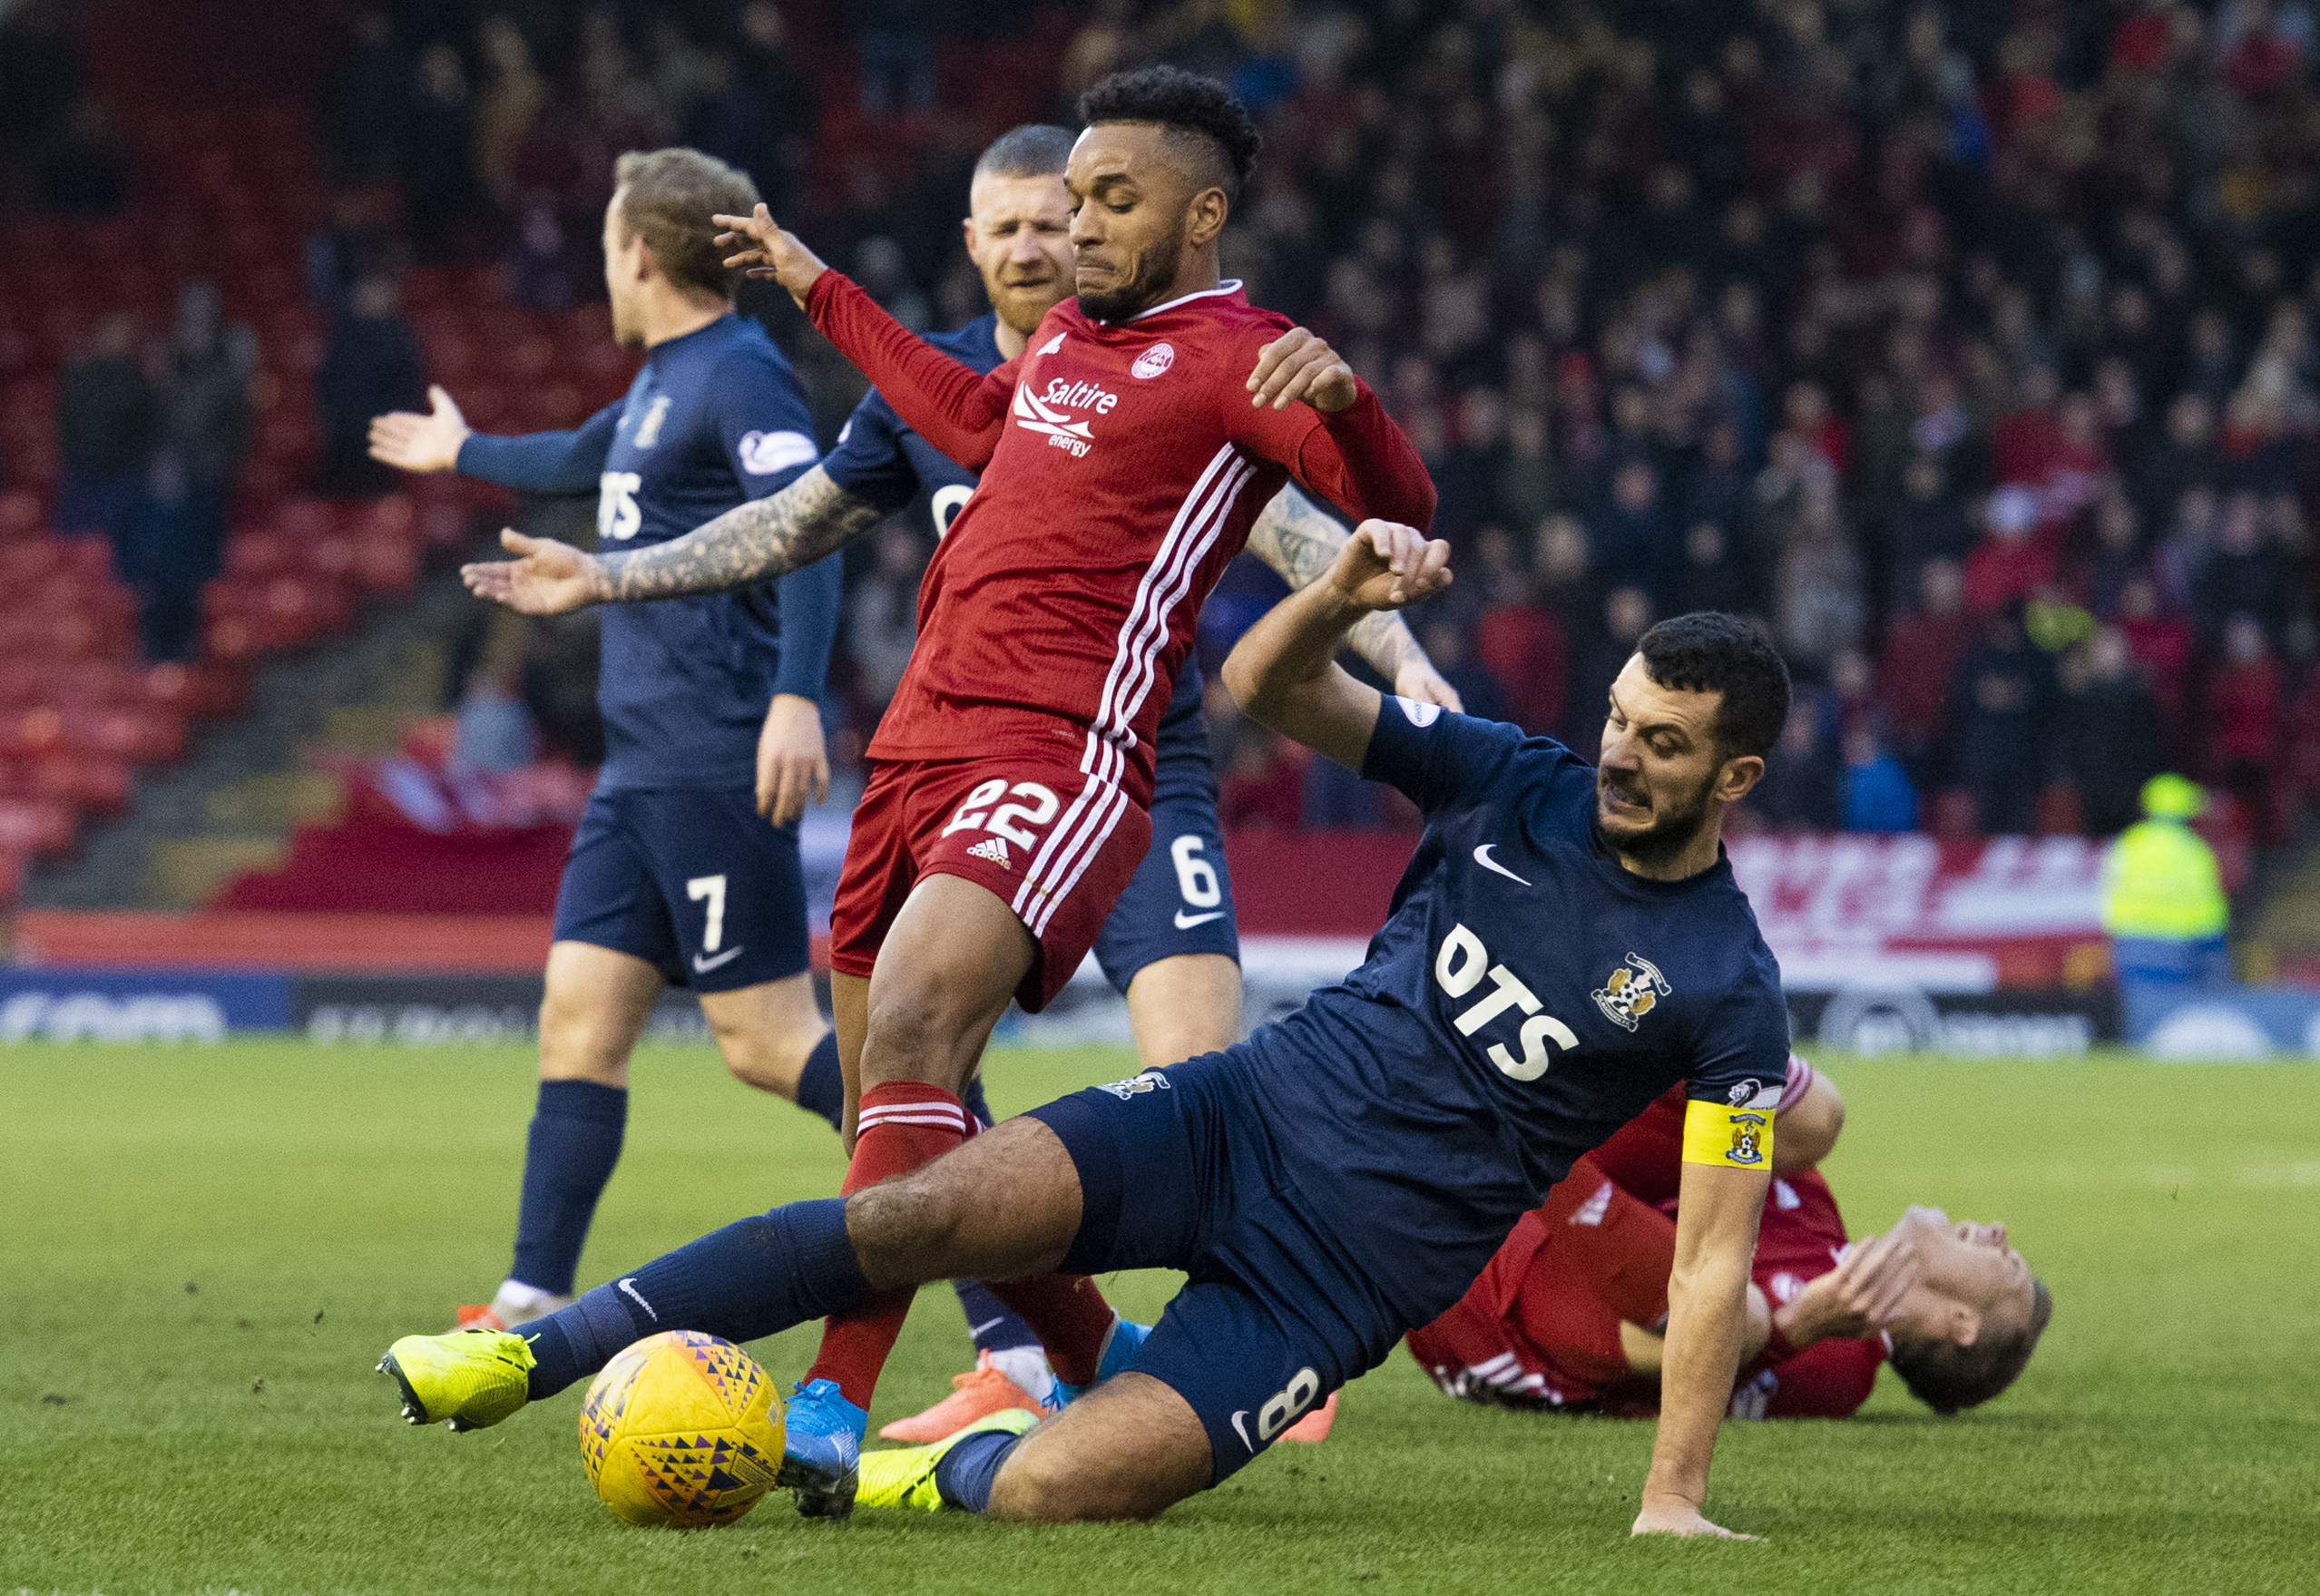 Aberdeen's Funso Ojo in action.